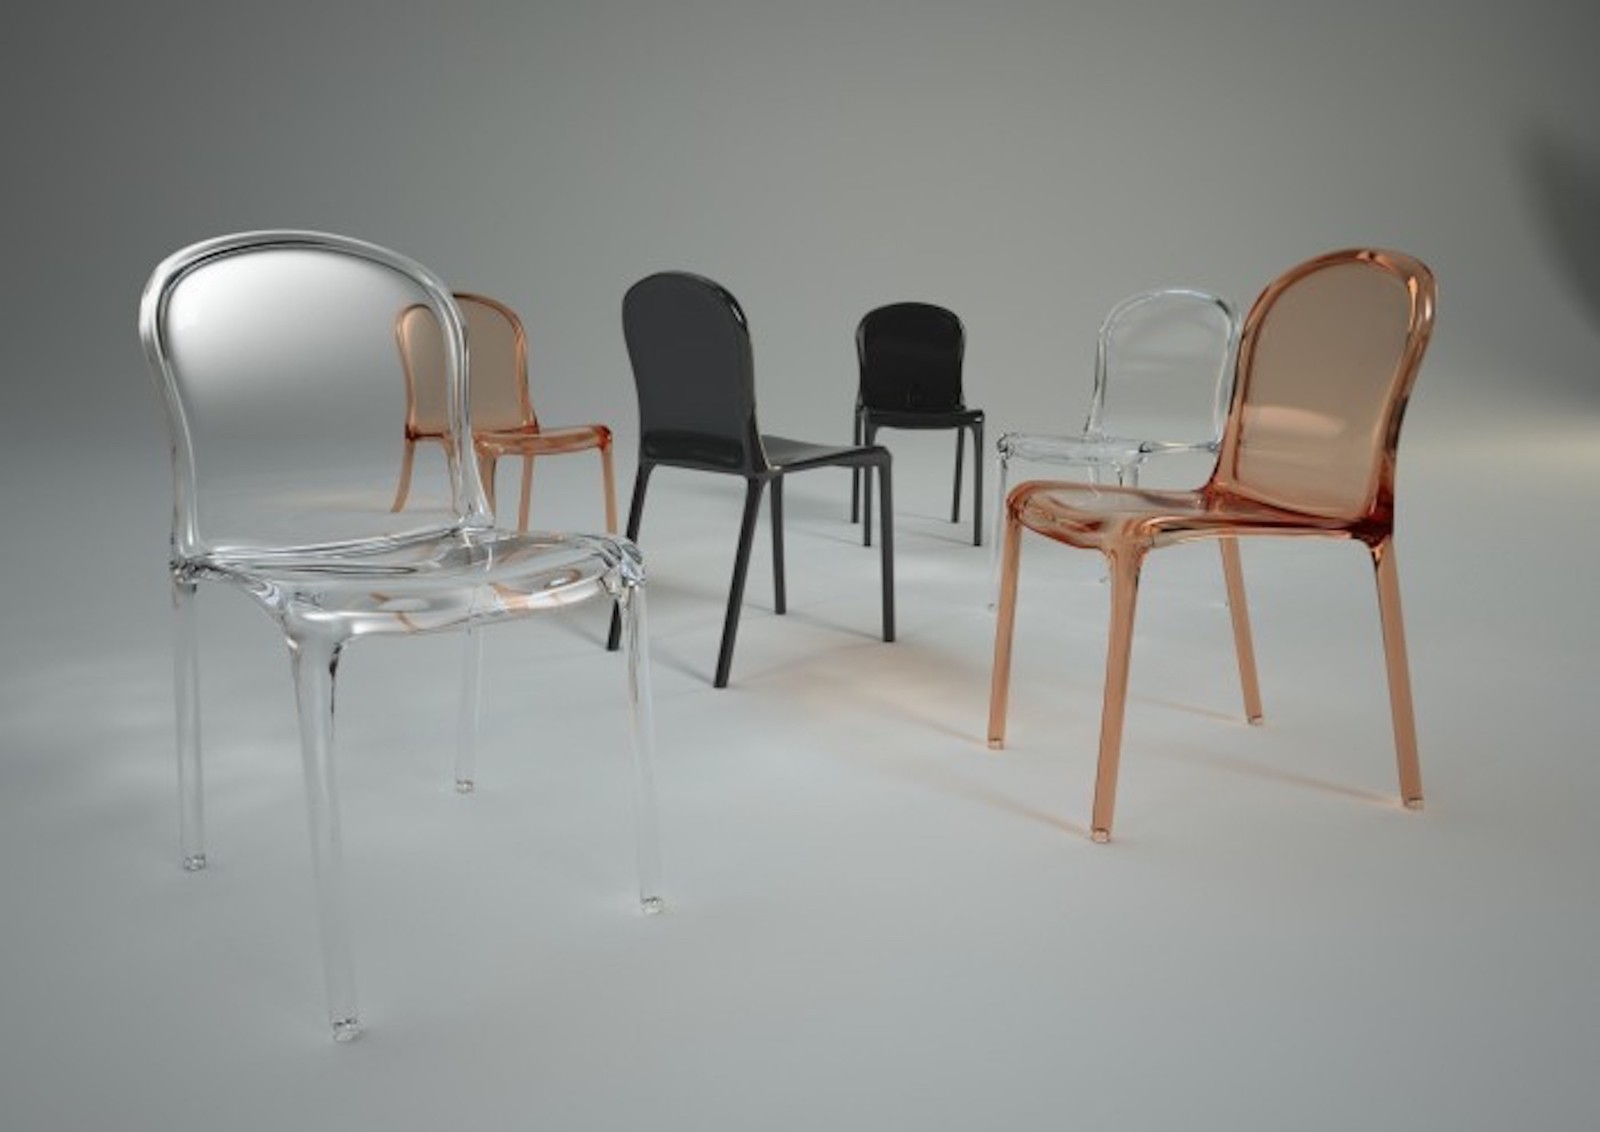 1780 - Mb chairs